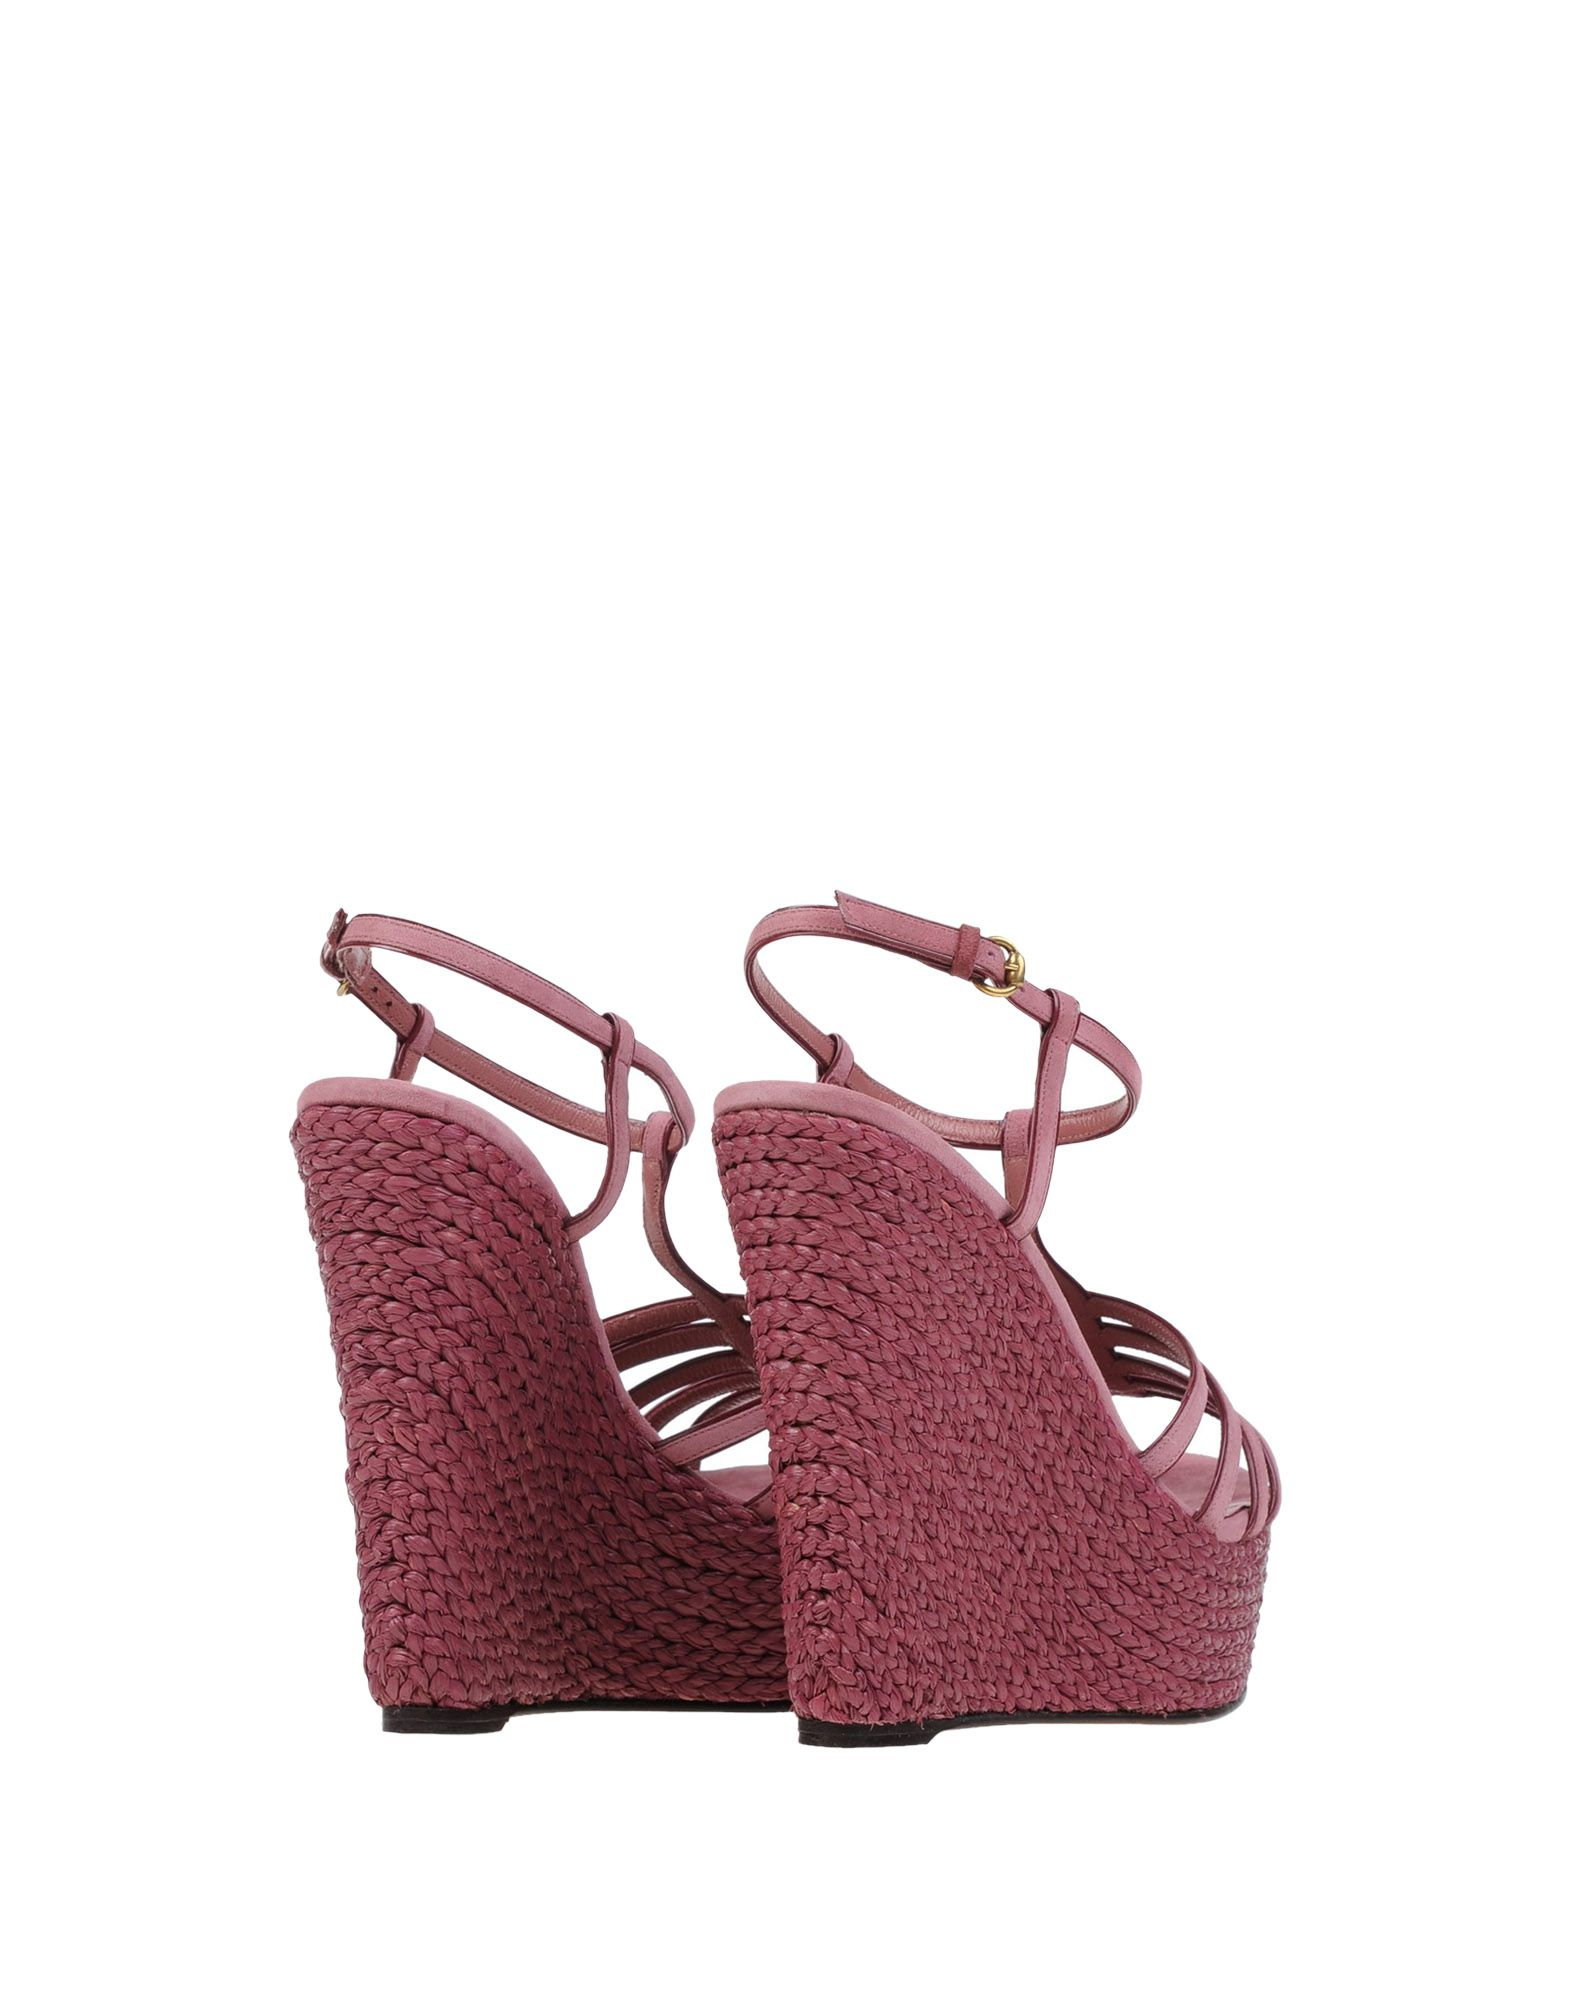 Lyst - Gucci Sandals in Pink